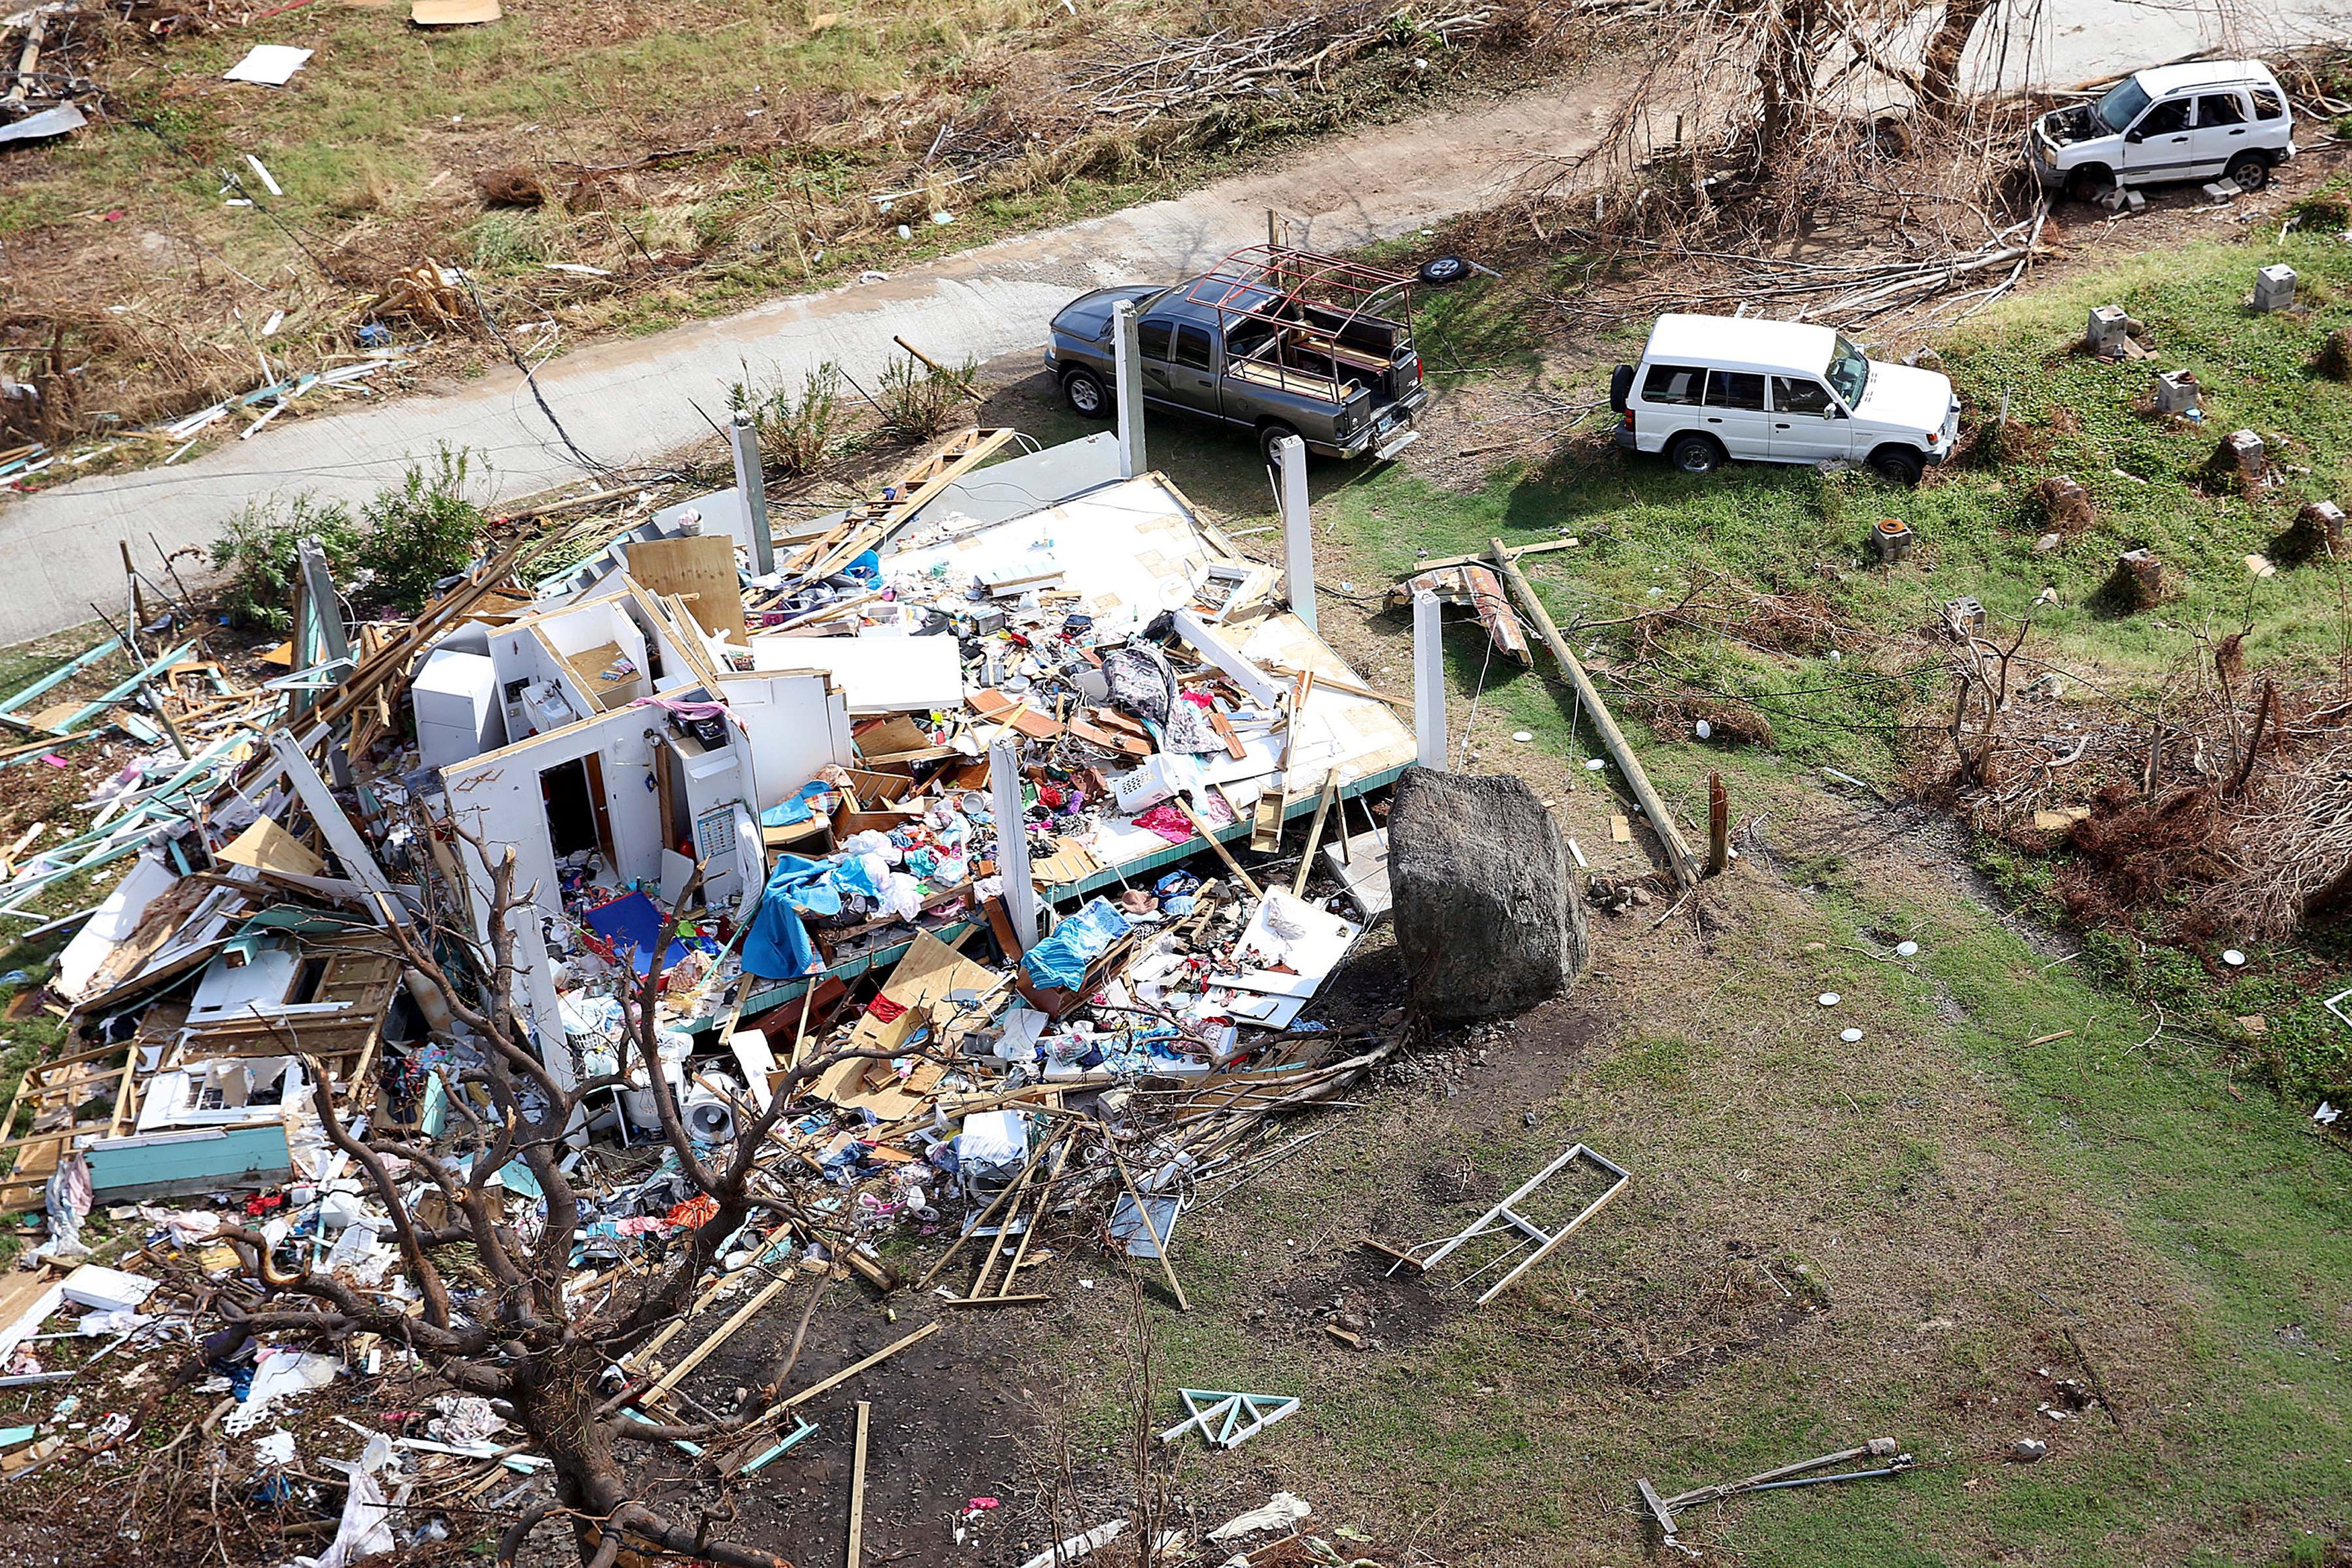 Storm damage is seen from the air after hurricane Irma passed Tortola, in the British Virgin Islands on Sept. 11, 2017. (Captain George Eatwell RM/Ministry of Defence handout via Reuters)